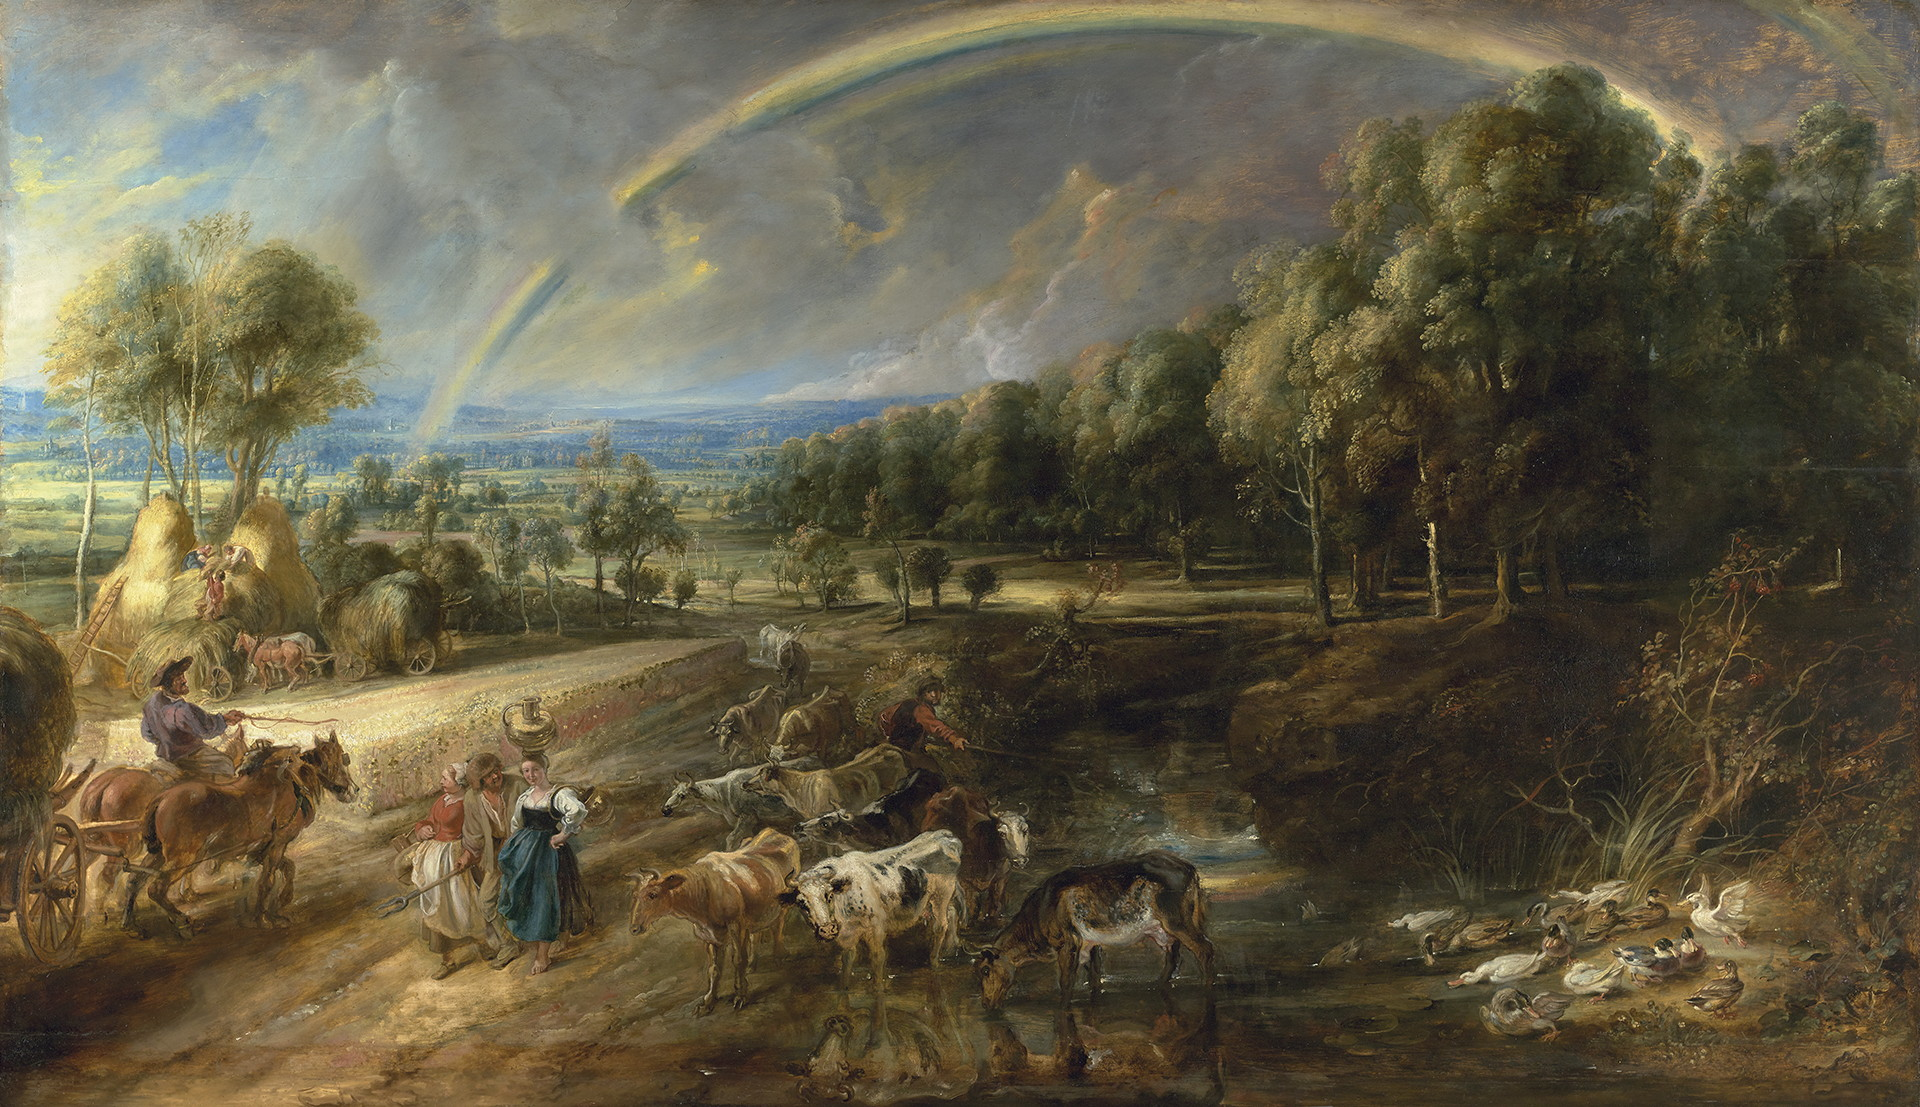 Peter Paul Rubens (1577-1640), The Rainbow Landscape, 1636 The Wallace Collection, London